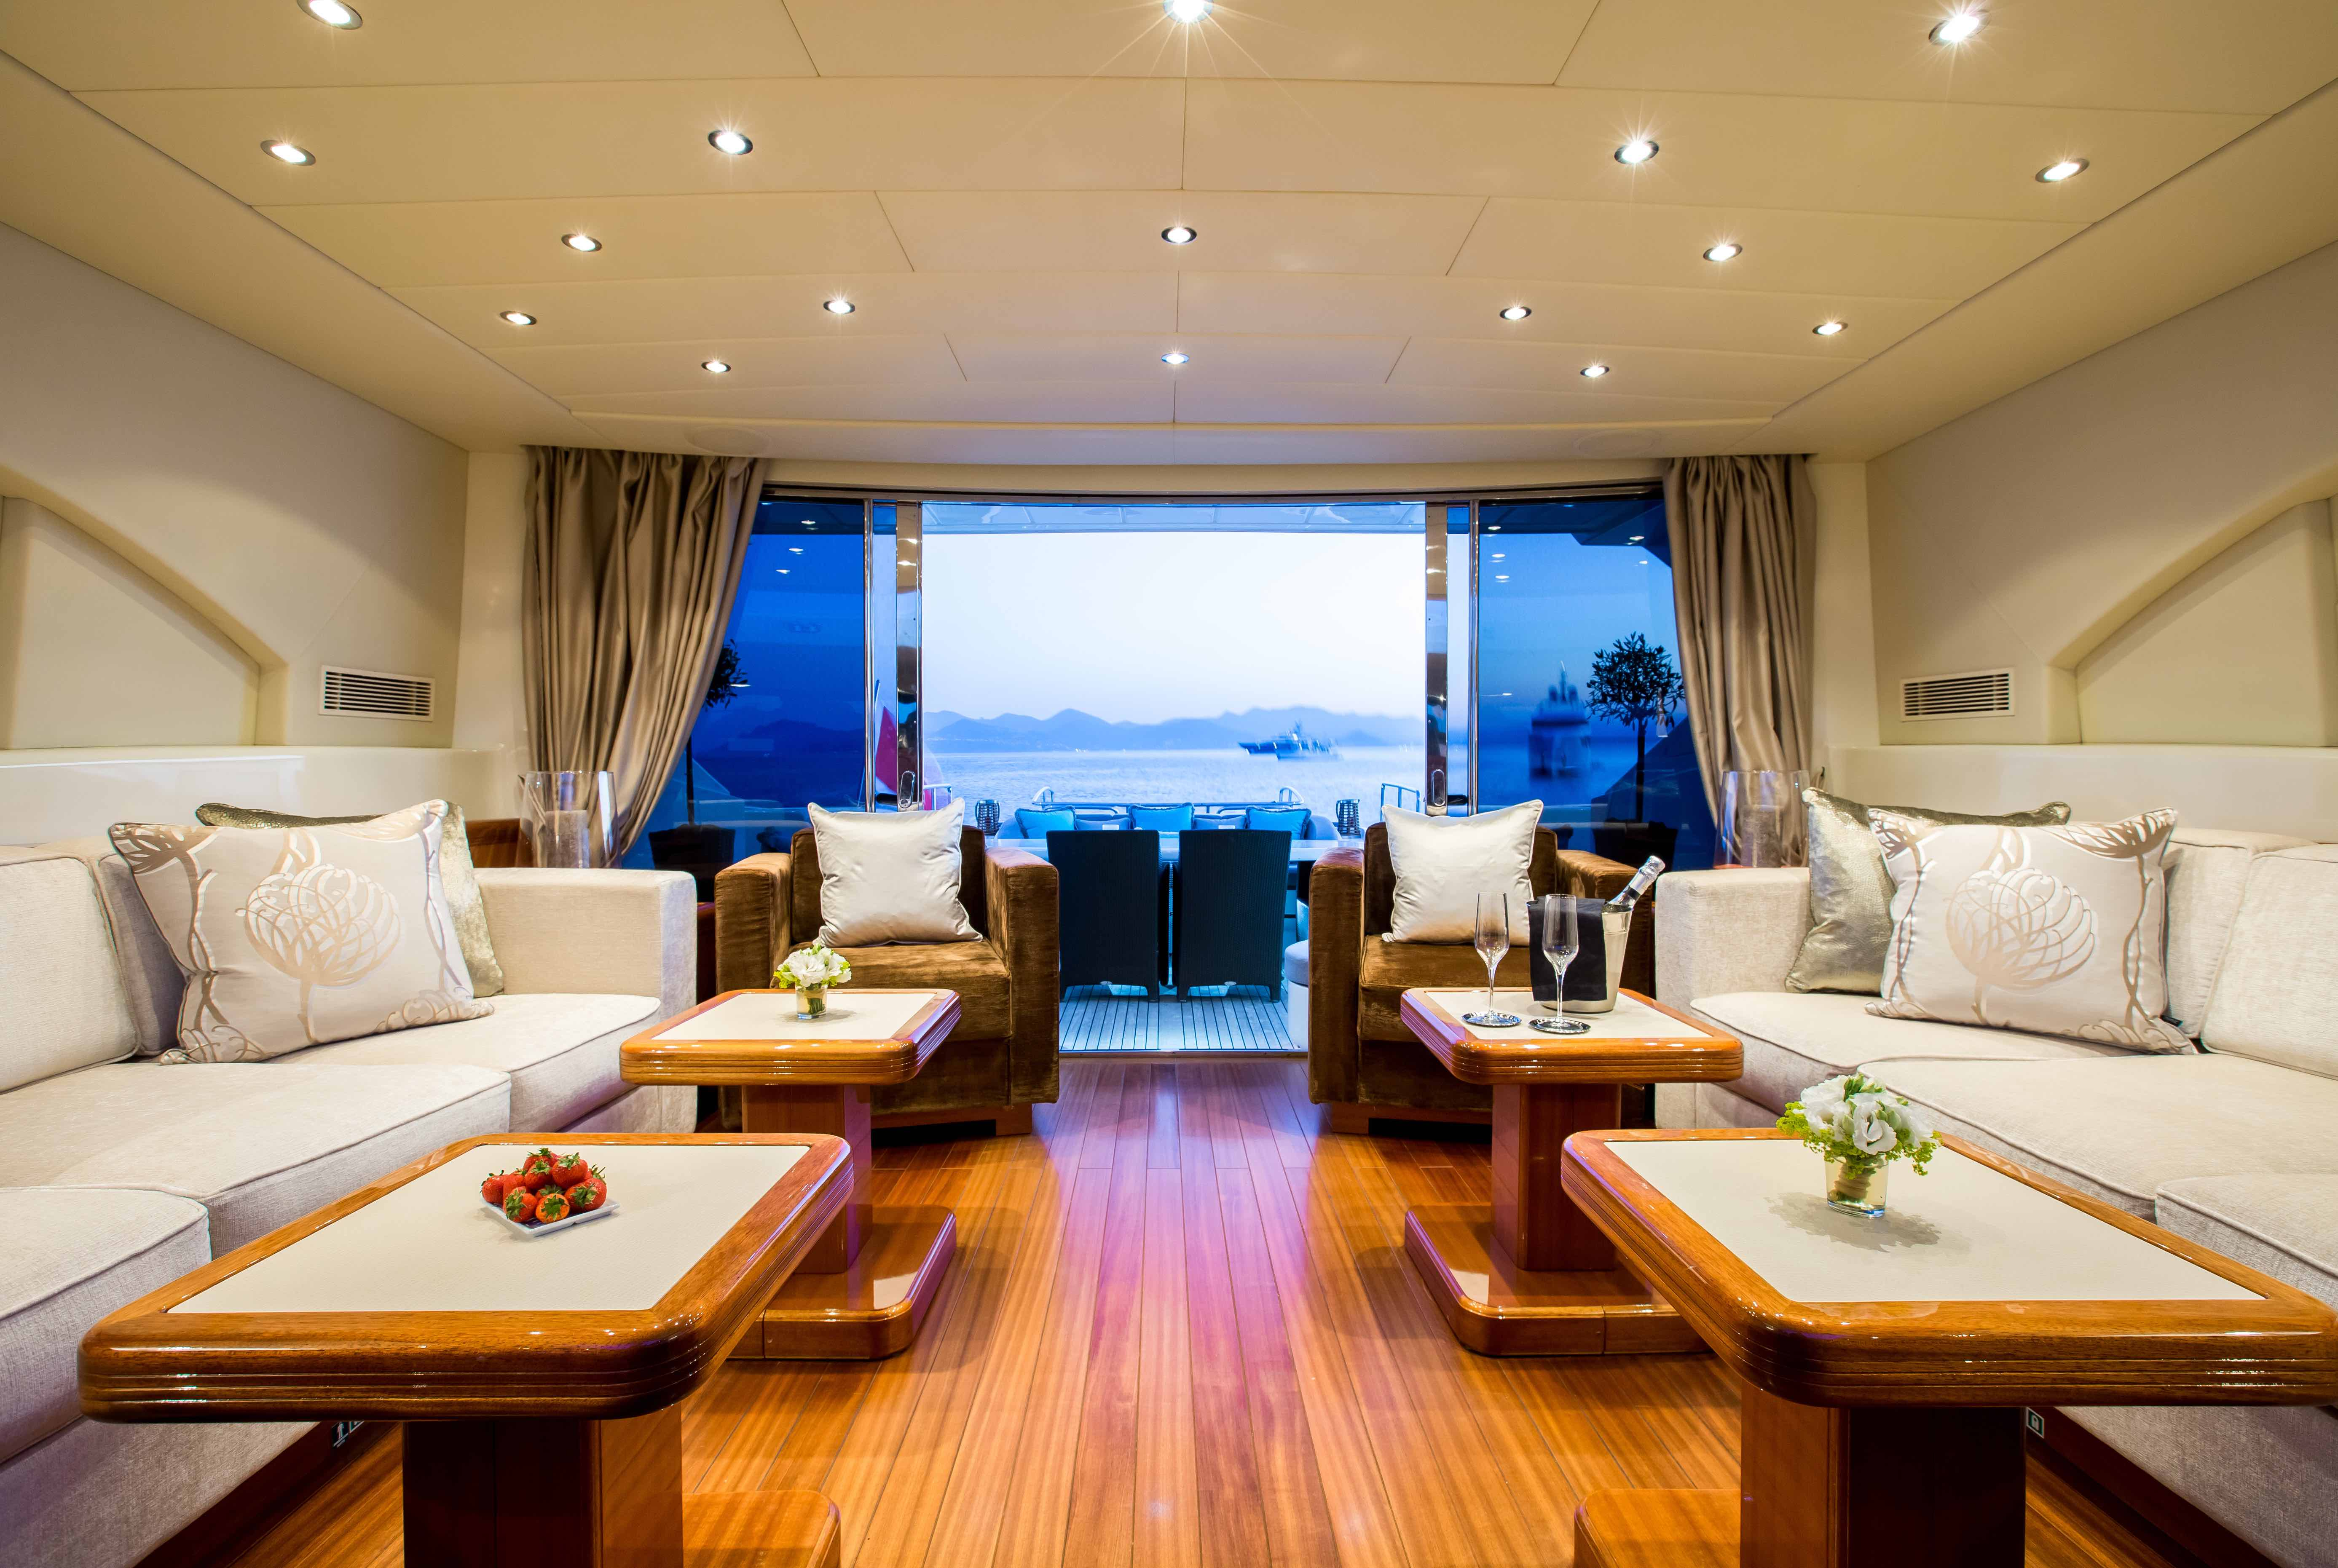 Hercules - Yacht for charter - salon